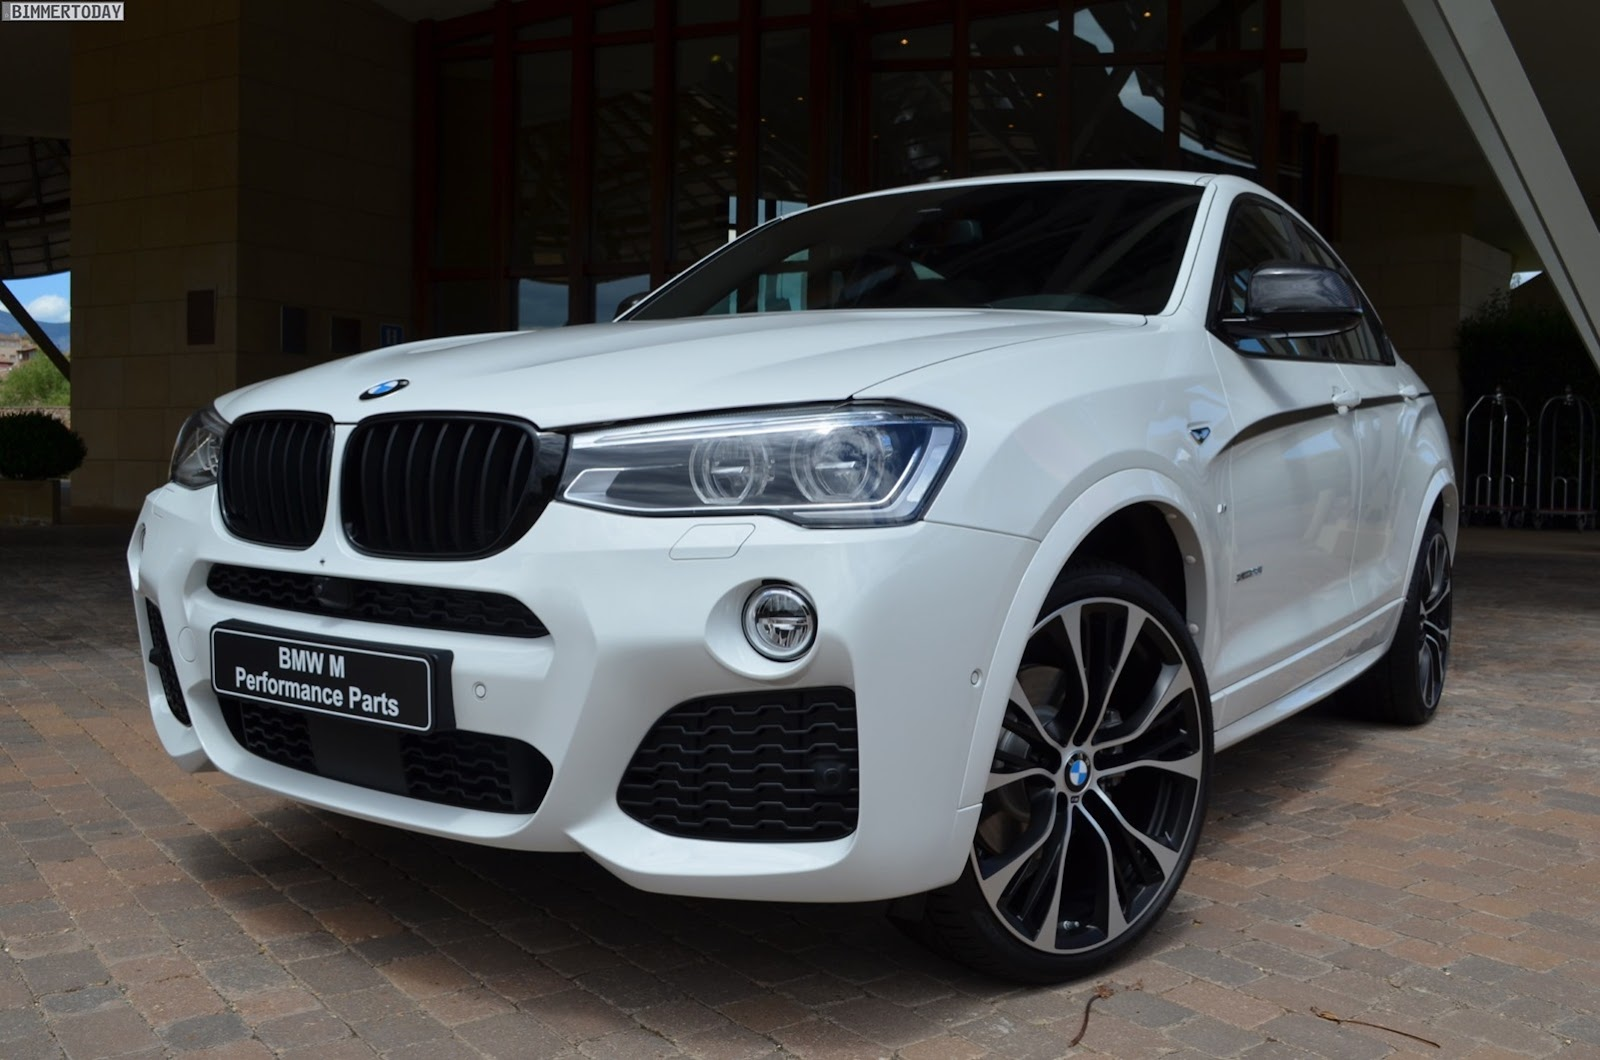 first photos of new bmw x4 m performance parts and x4 accessories bmw x4 forum. Black Bedroom Furniture Sets. Home Design Ideas